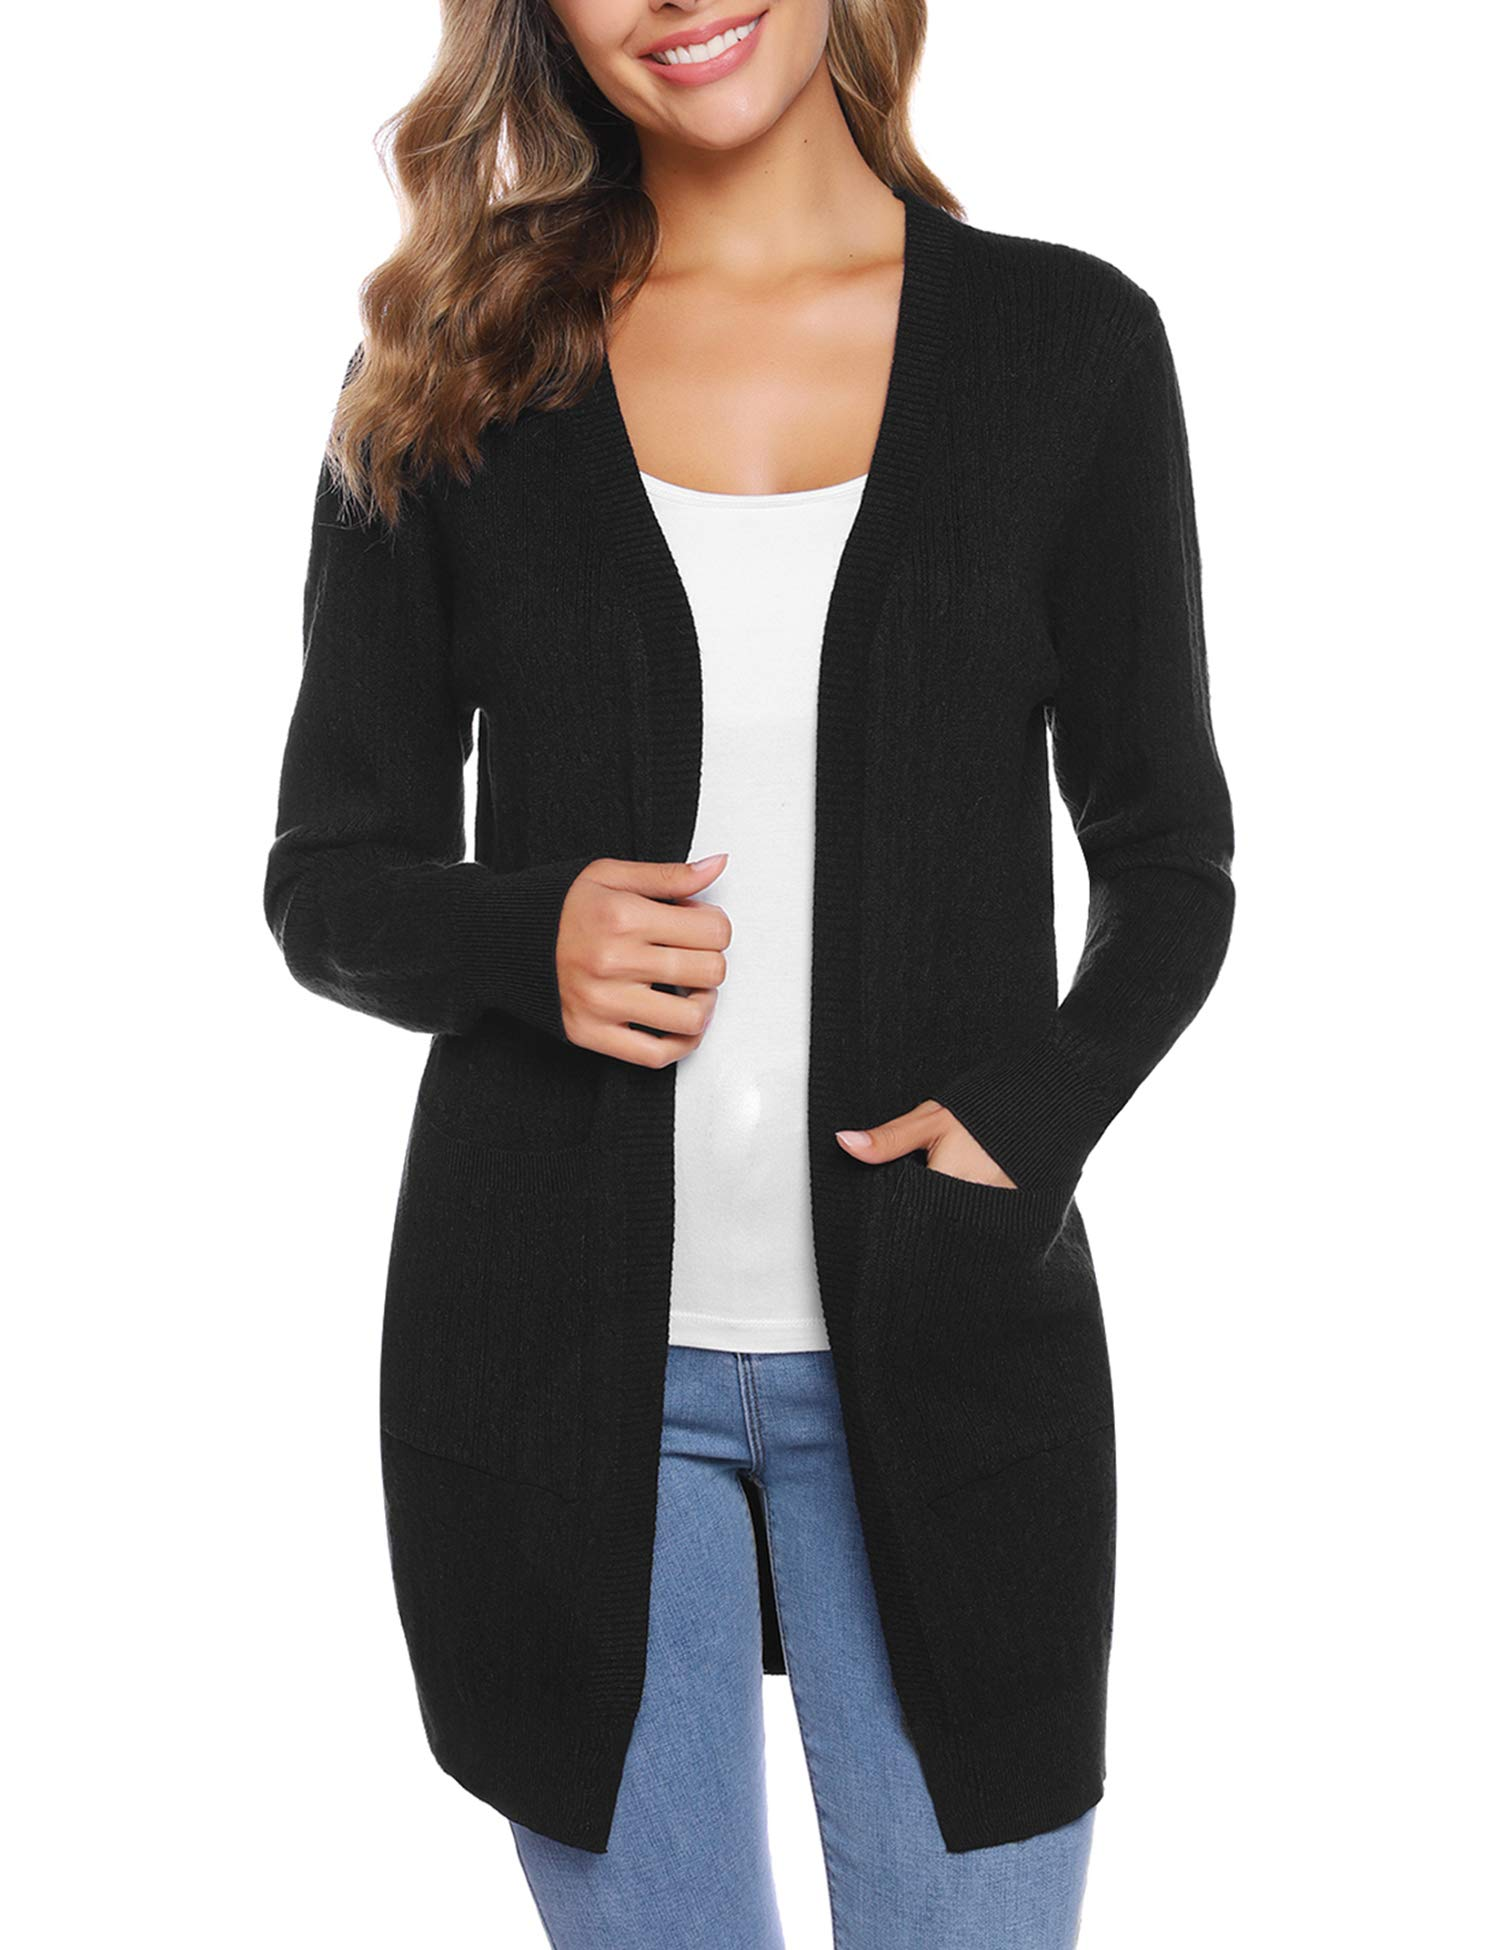 iClosam Women's Thick Long Sleeve Open Front Cardigan Knit Sweater with Pockets